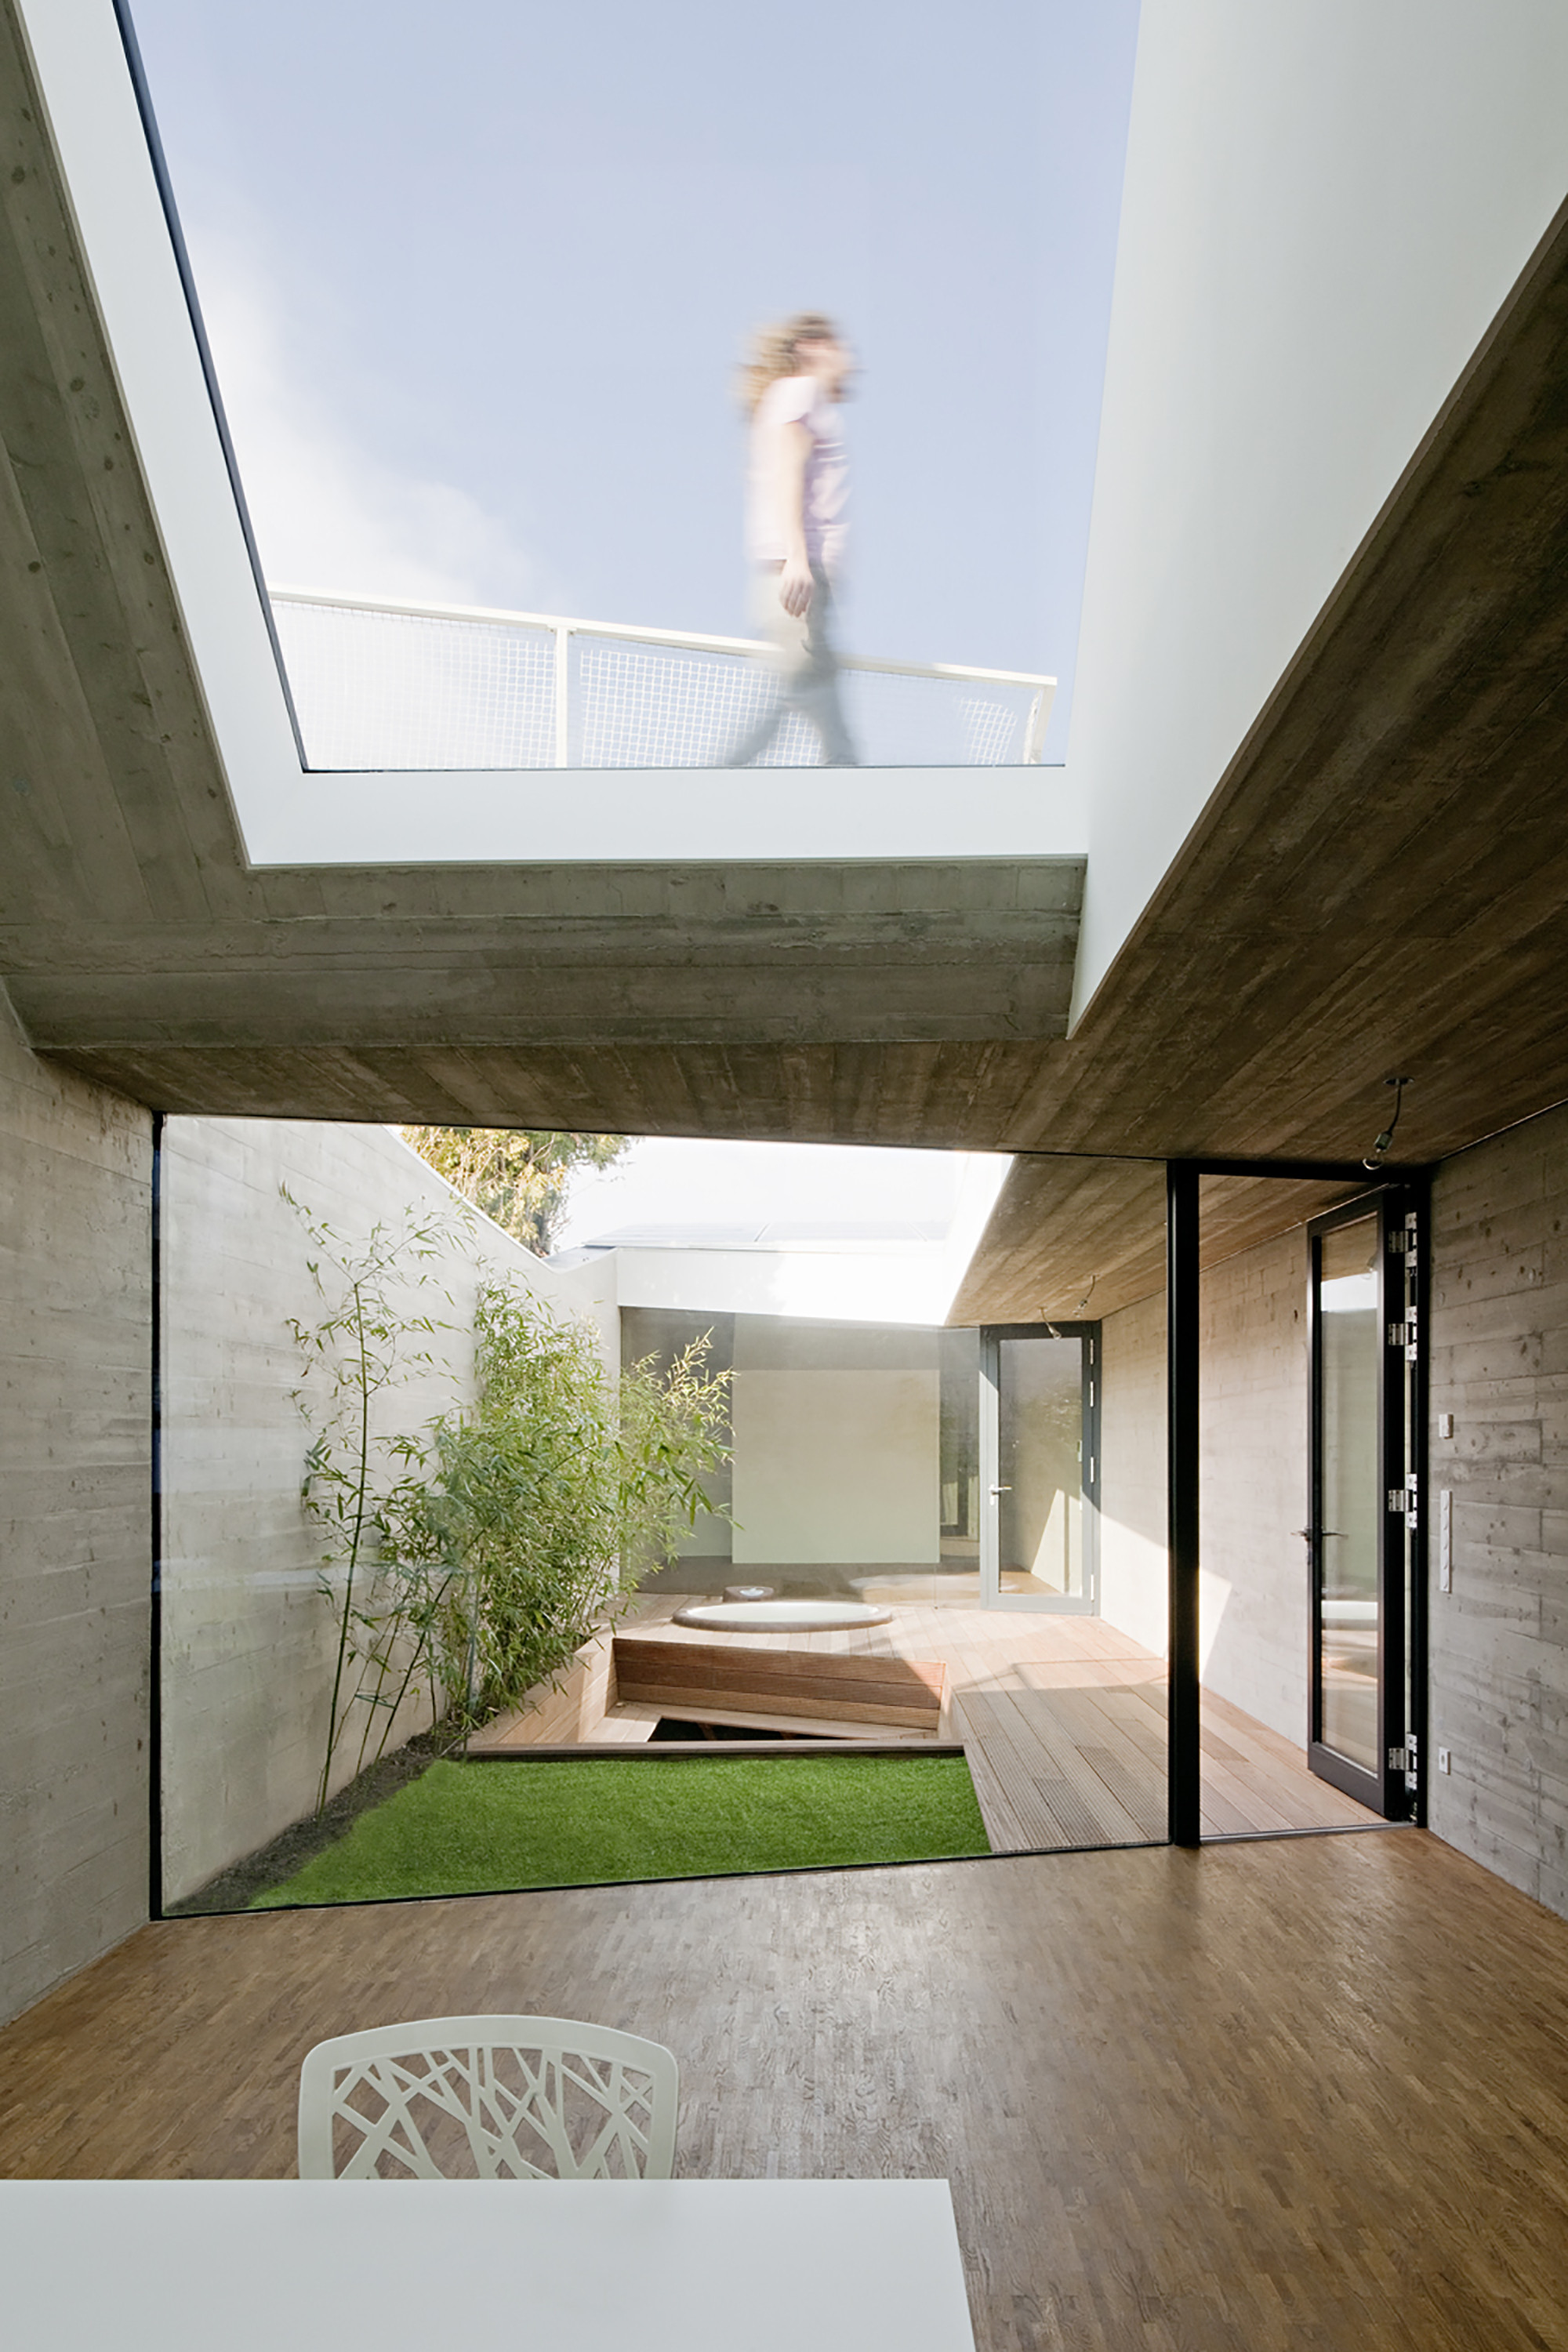 Gallery Of Cj5 House Caramel Architekten 1